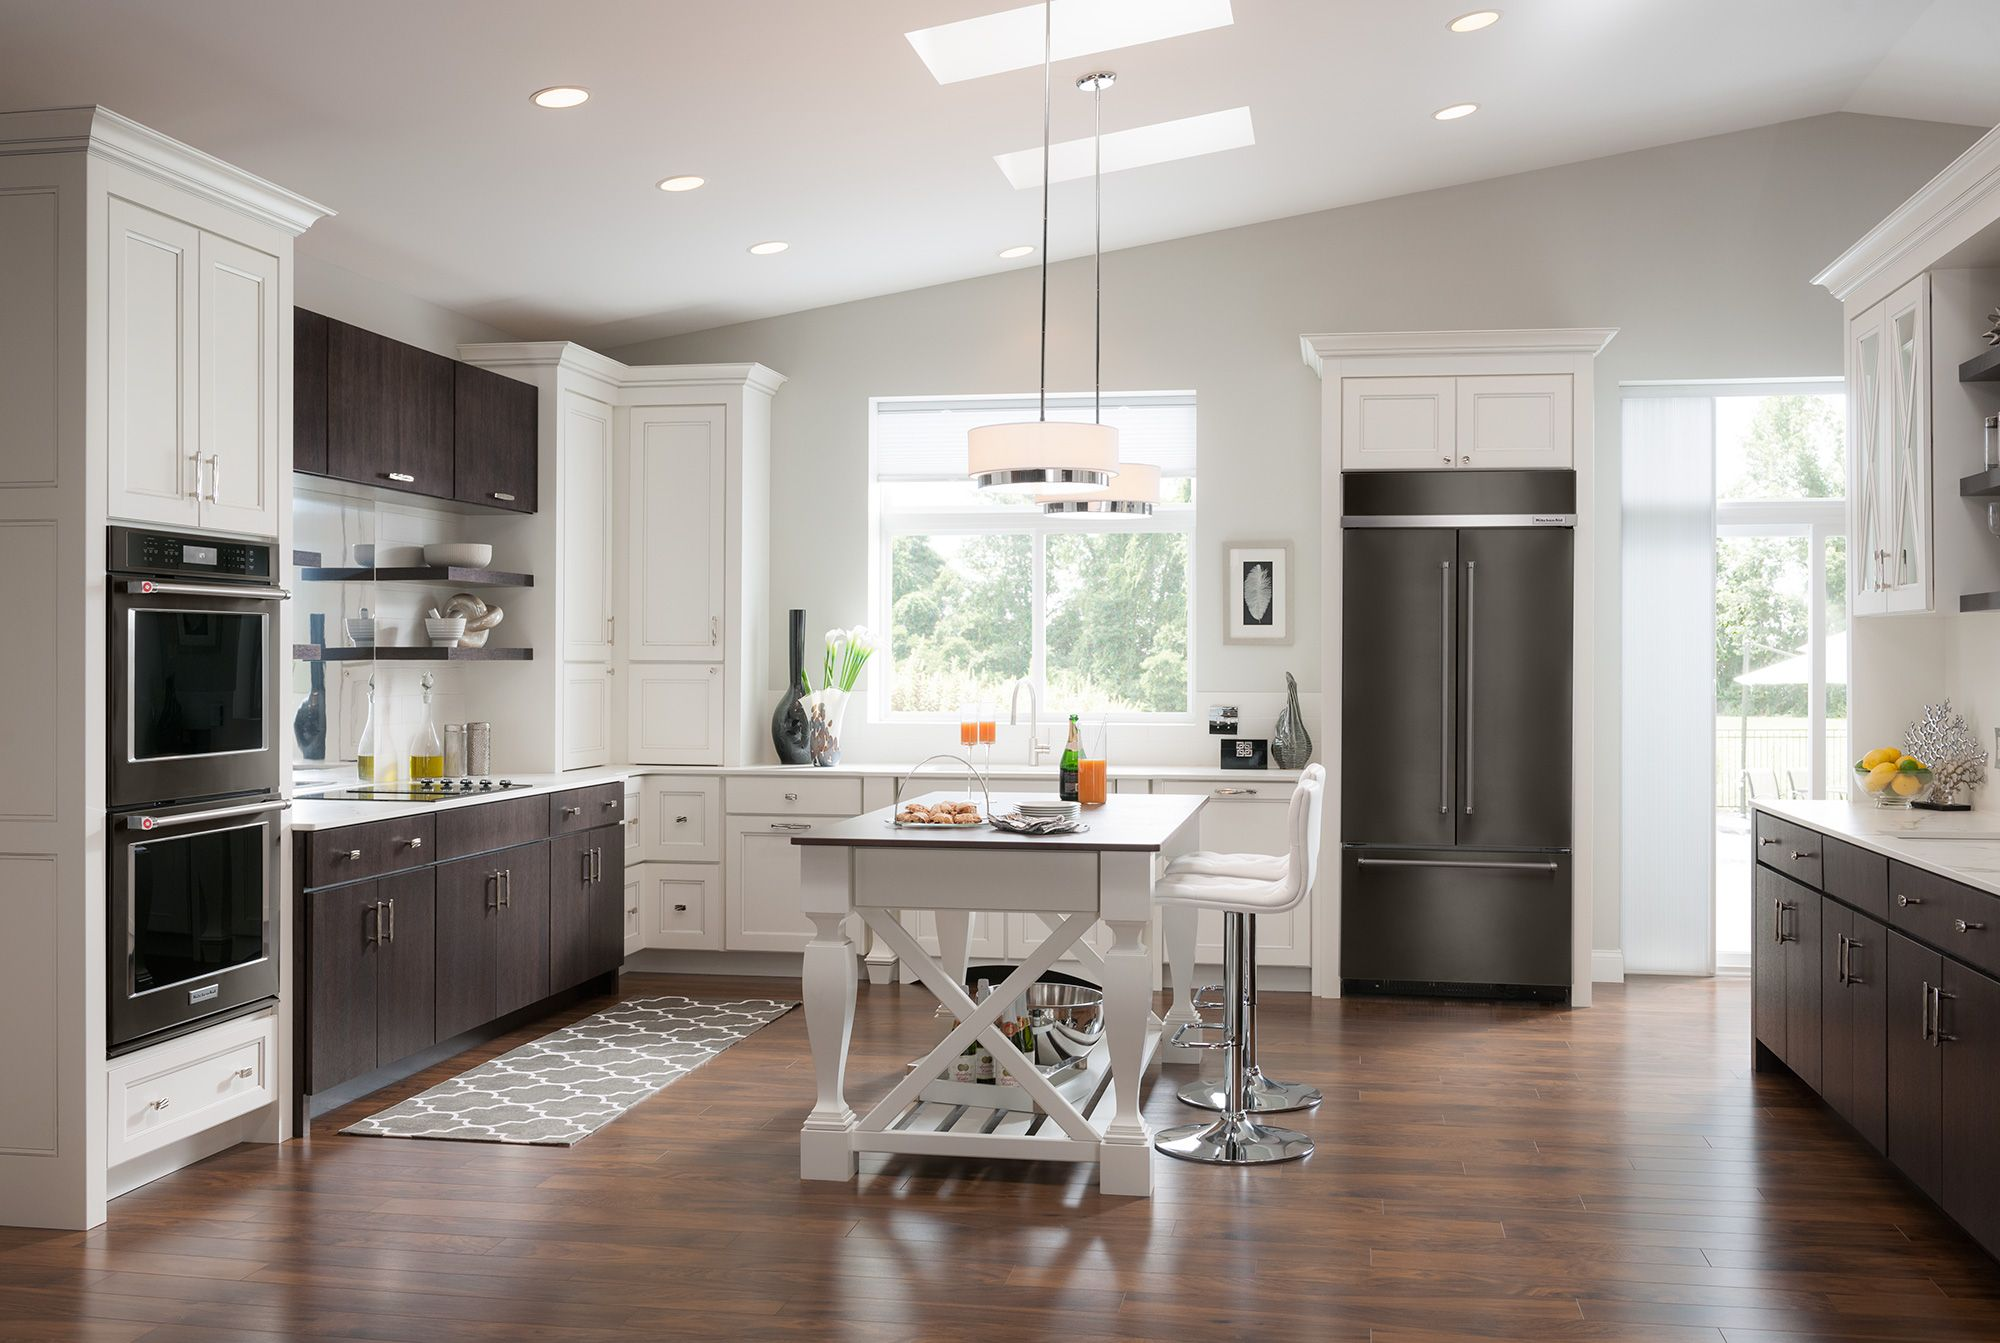 Culinary Inspiration | Kitchen Design Galleries | KitchenAid ...